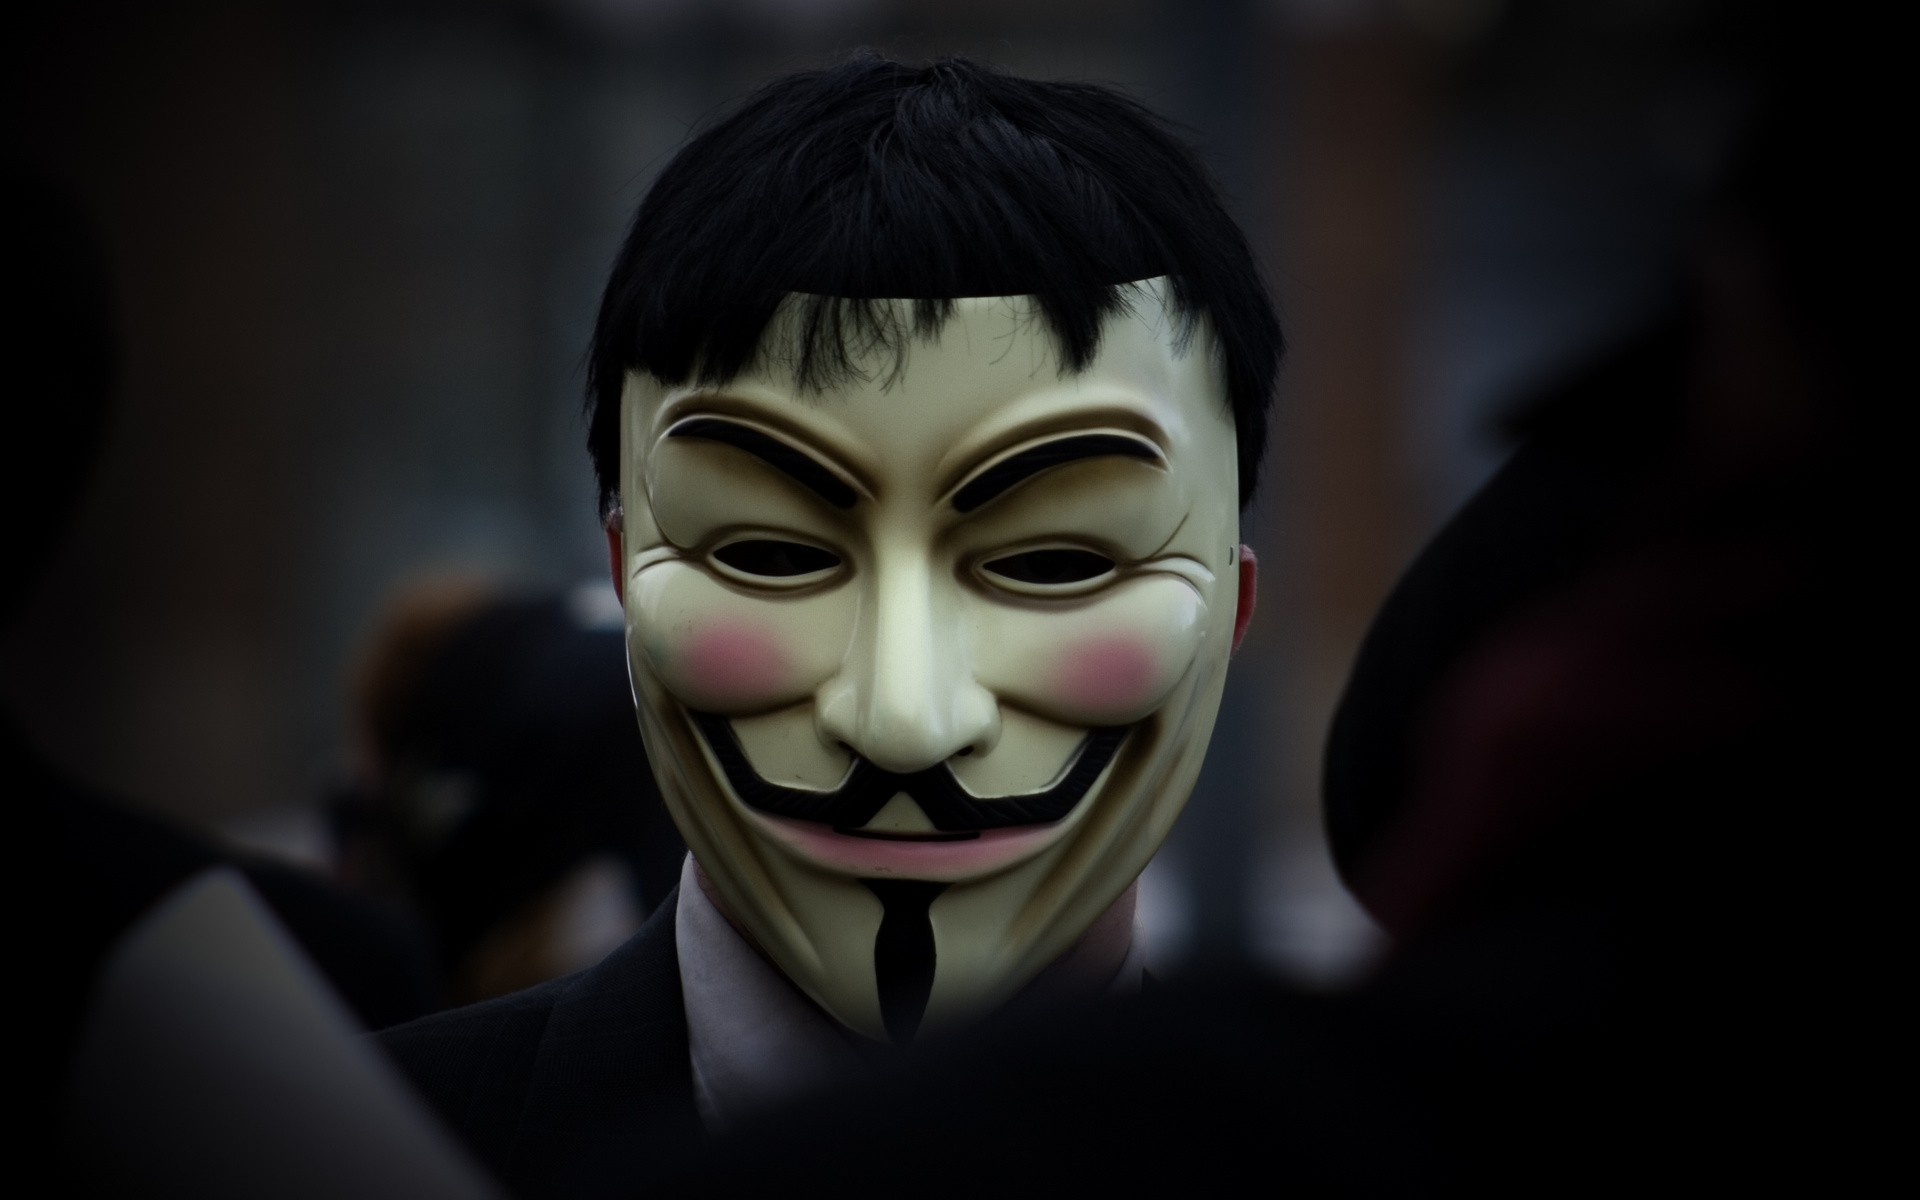 Mask Anonymous Wallpaper Download HD Wallpaper with 1920x1200 1920x1200